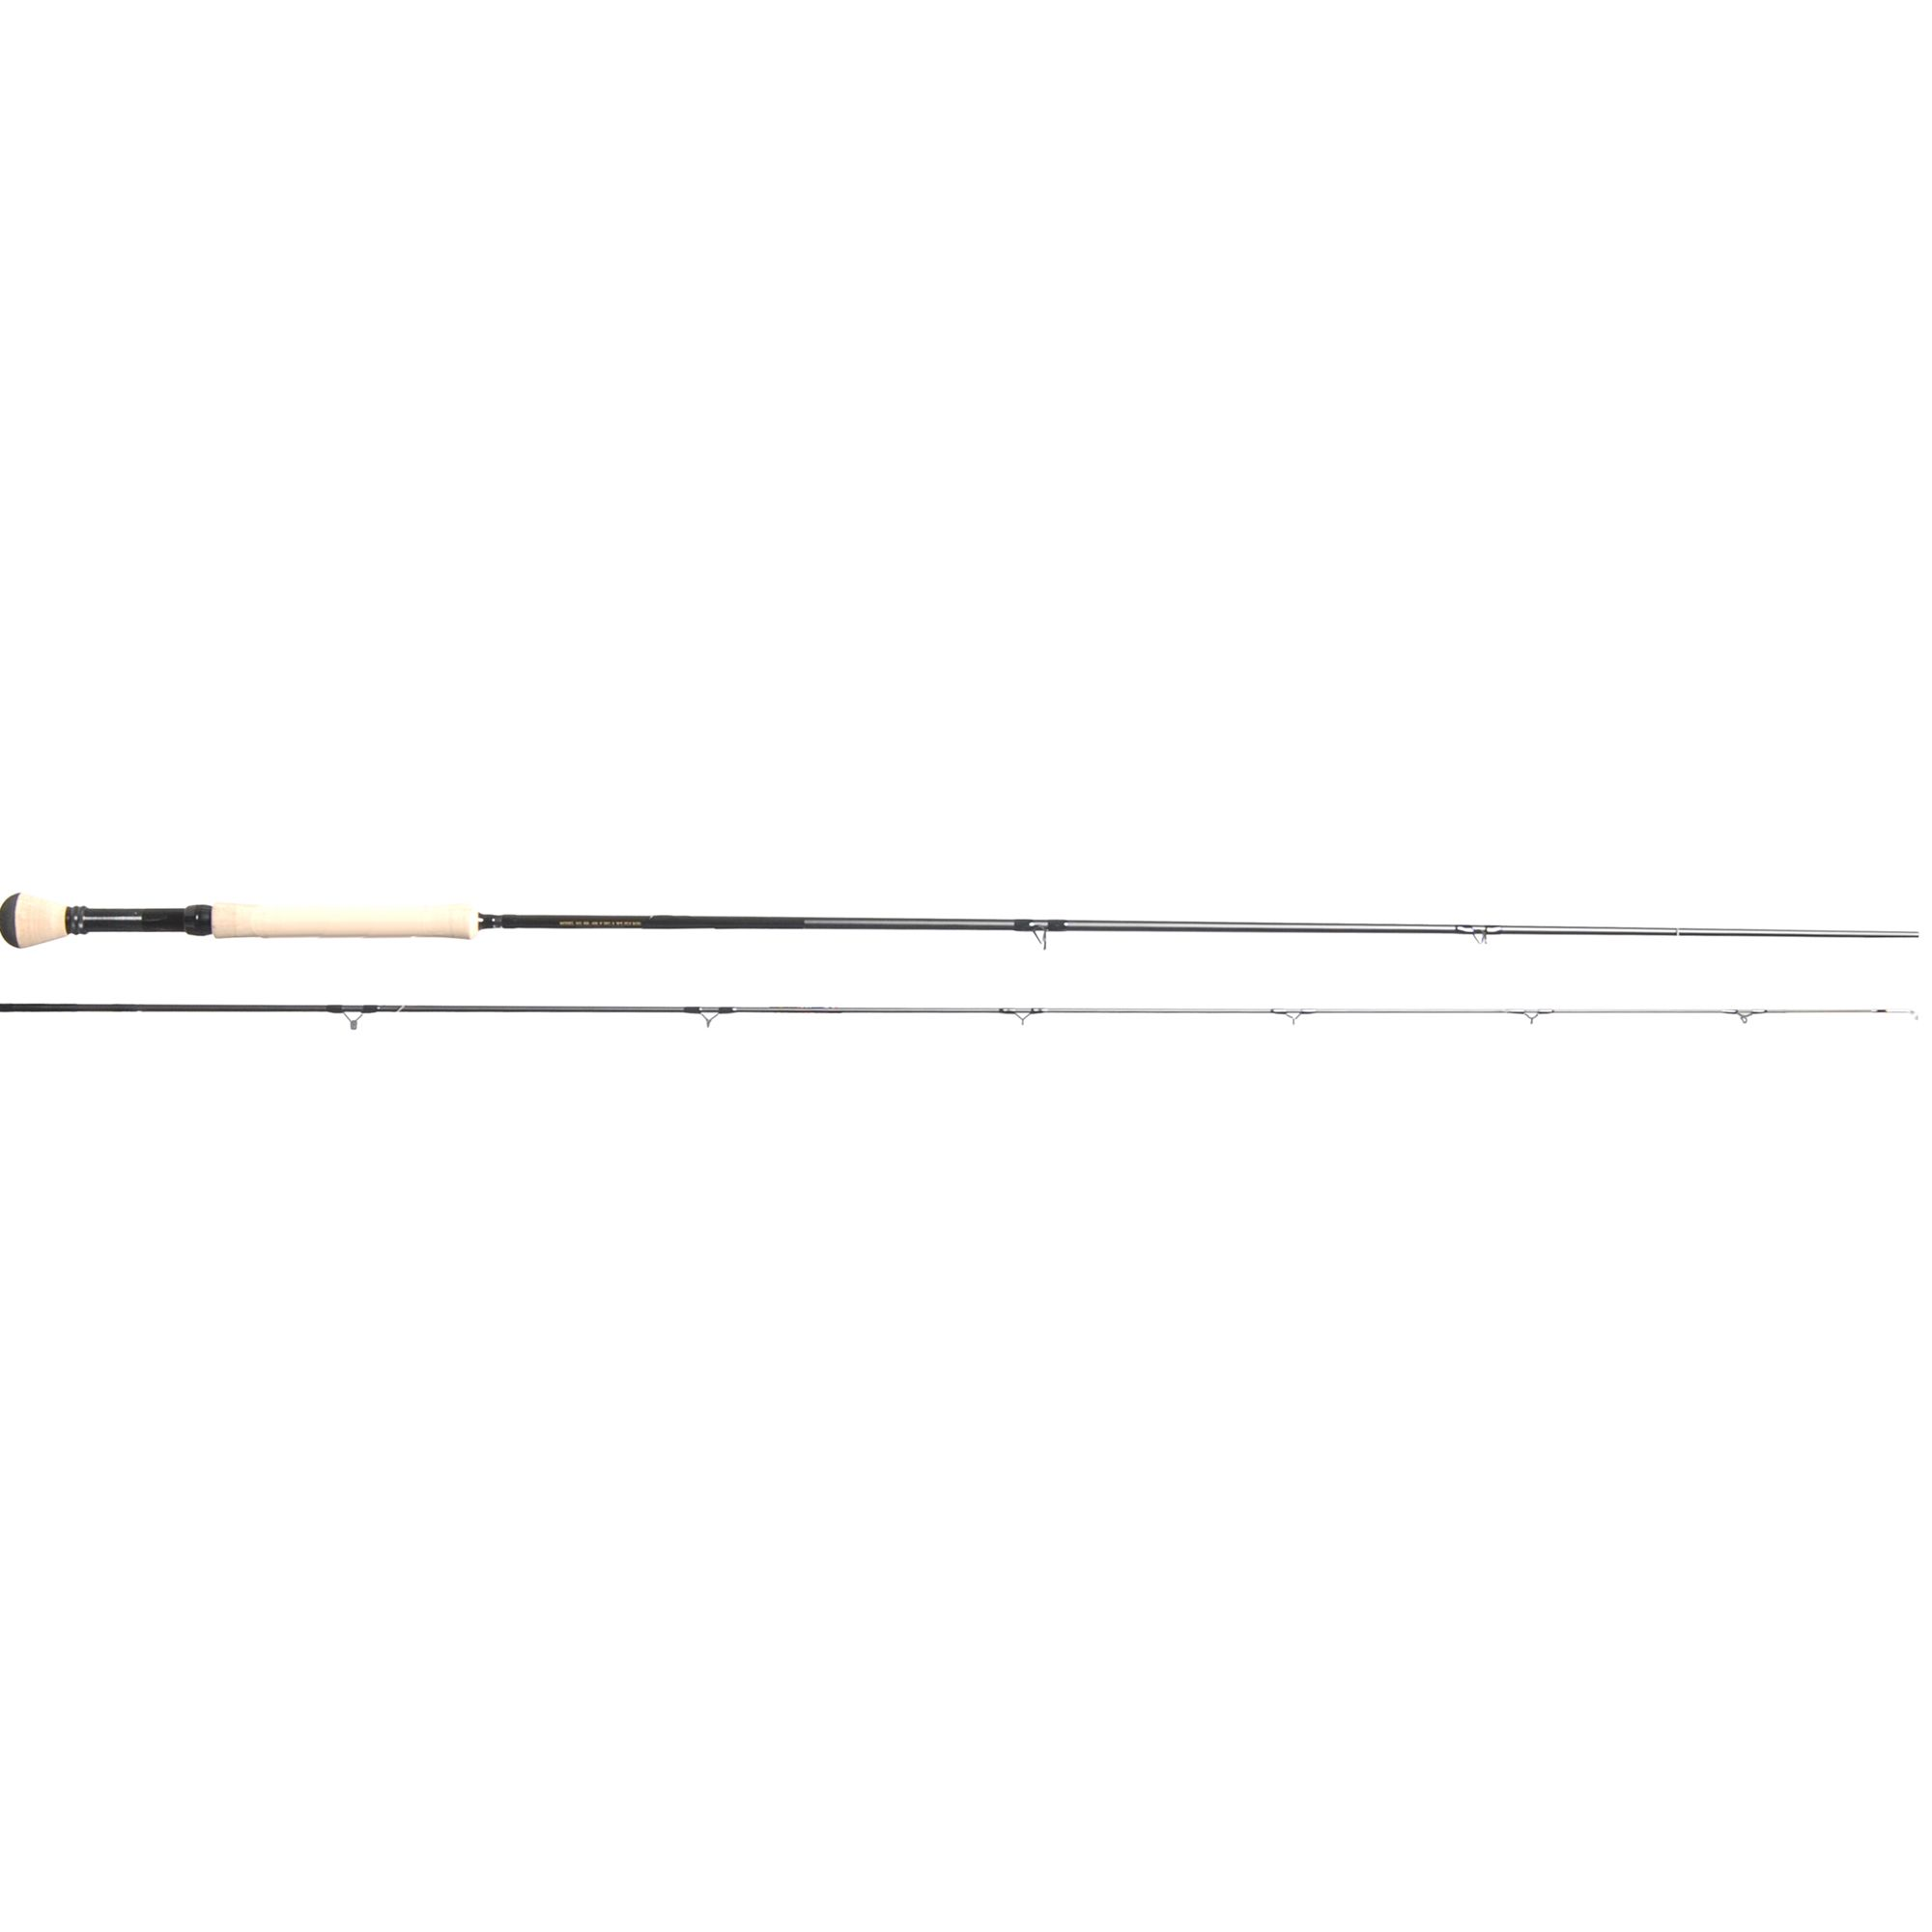 Fishing Rods Kmart Hurricane Redbone 9 39 2pc 8wt Fly Rod Fitness And Sports